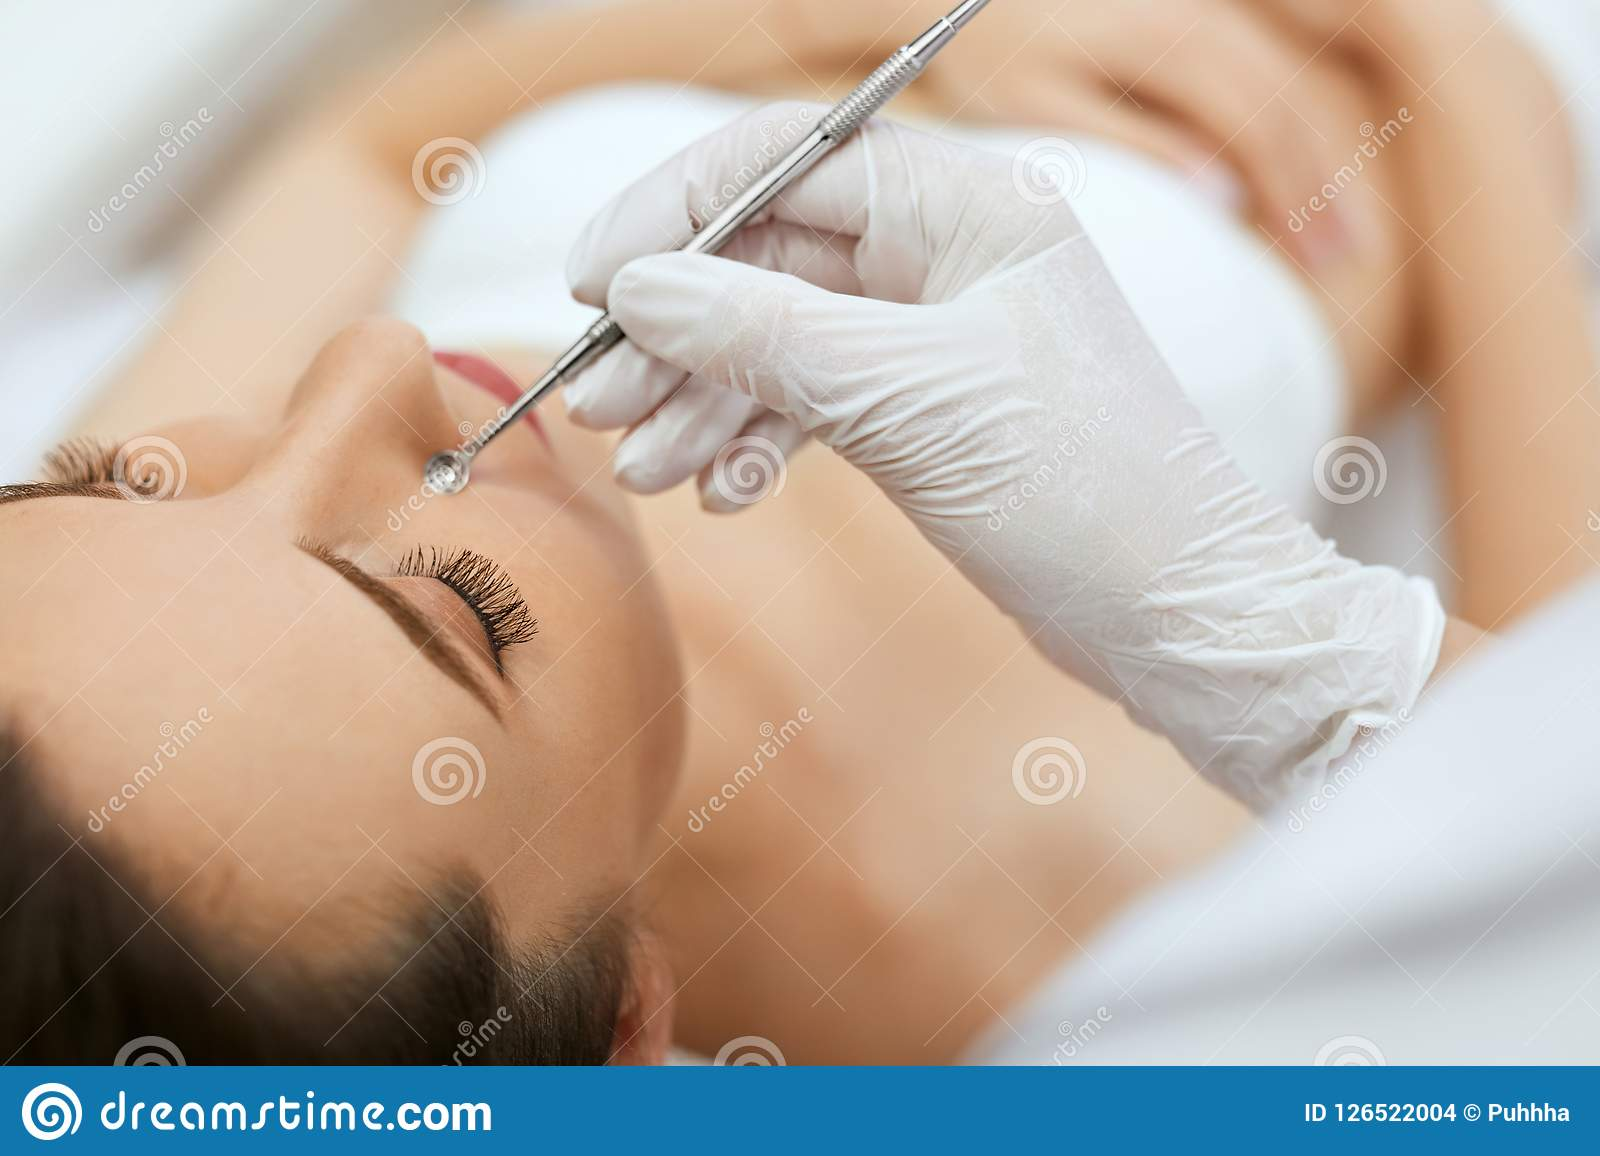 Mechanical cleansing of the face: what it is, description of the procedure, contraindications 6